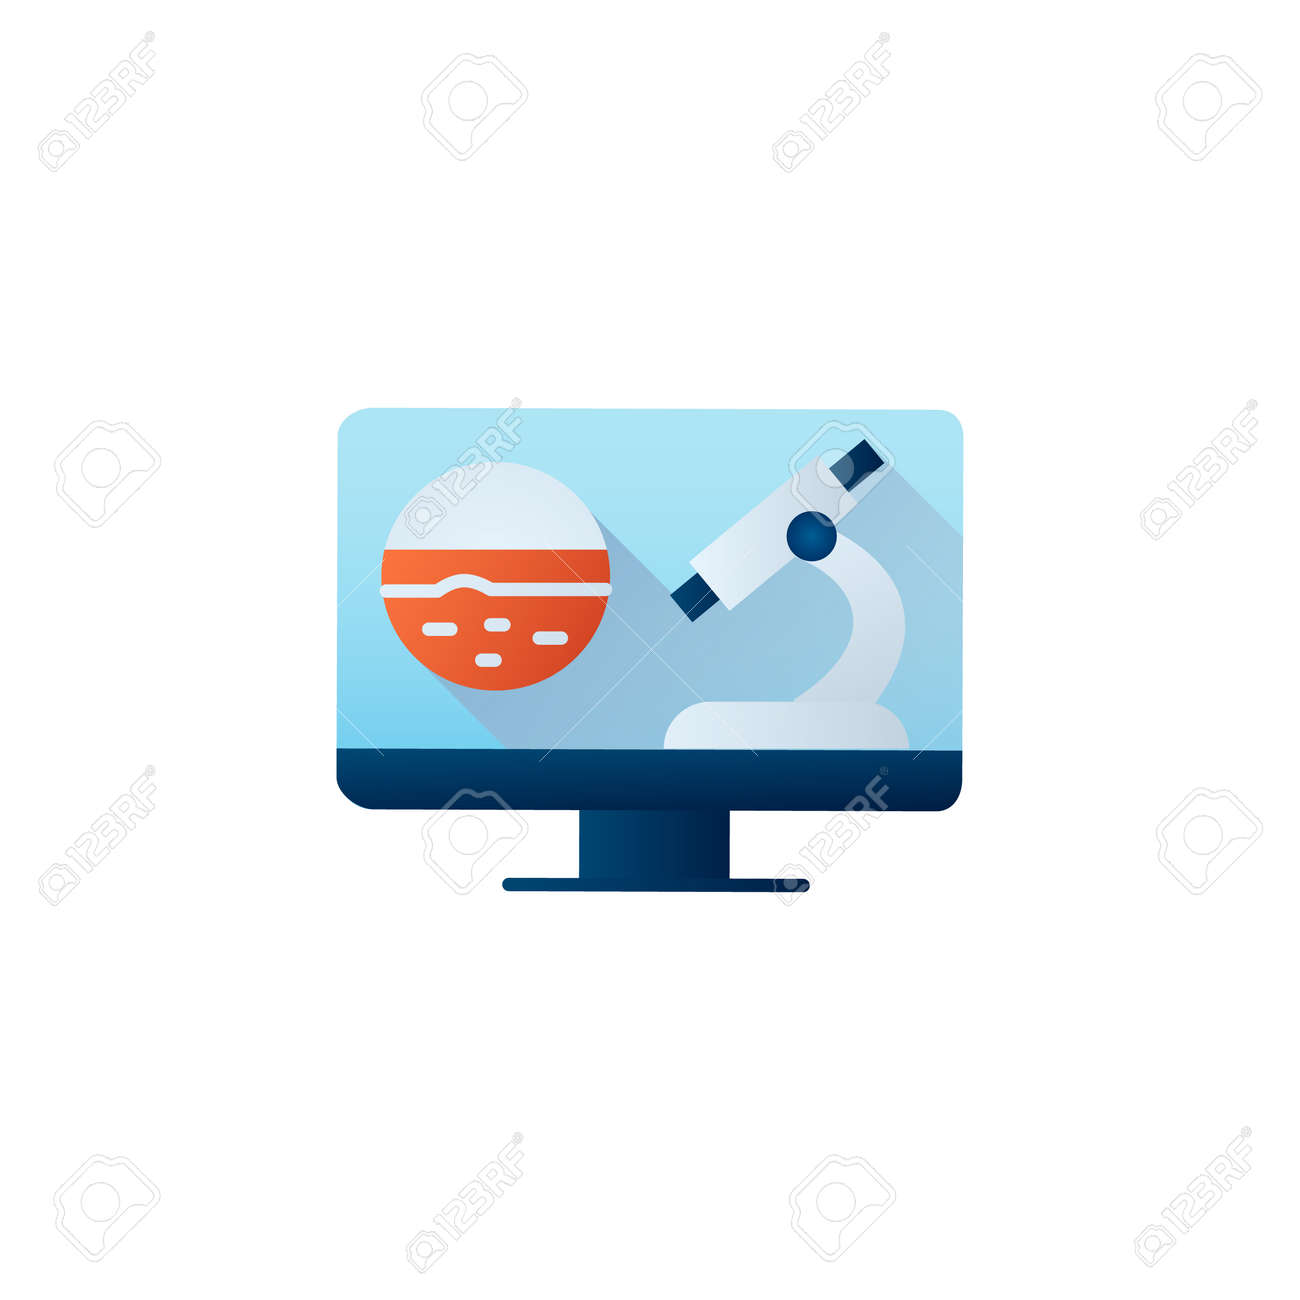 Online oncology flat icon - 163111968